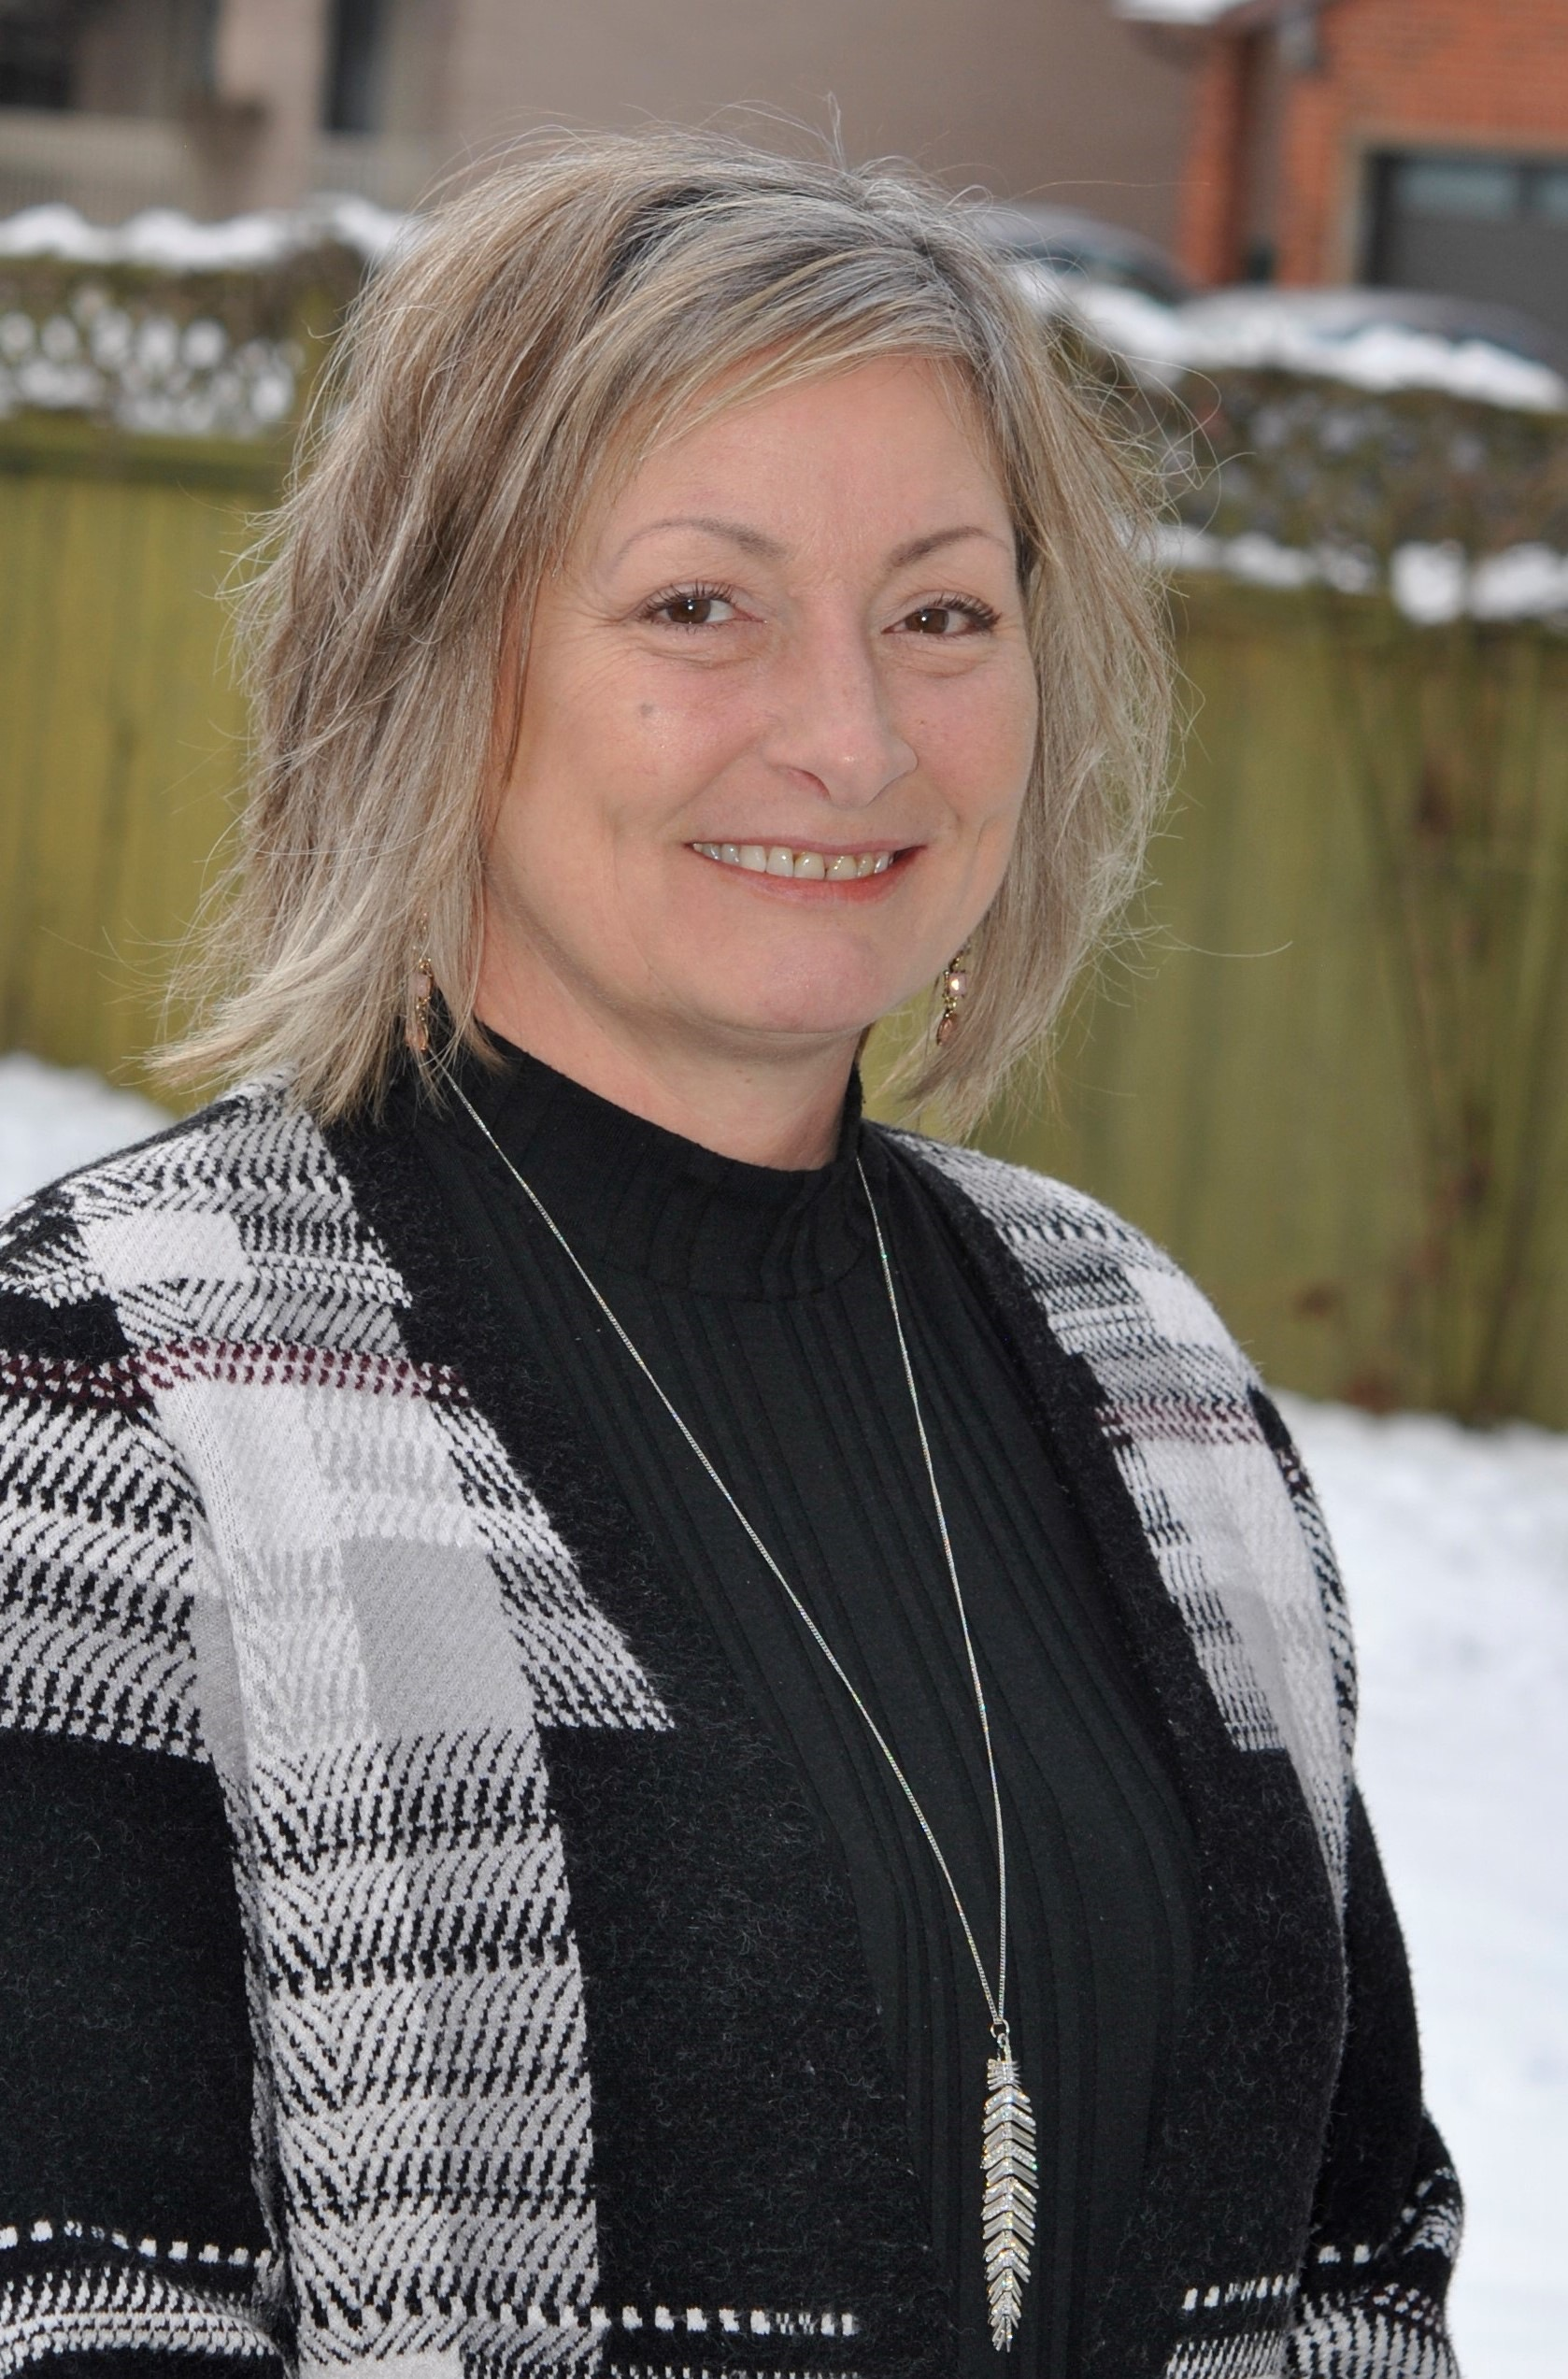 A headshot of Denise, a speaker in the discussion